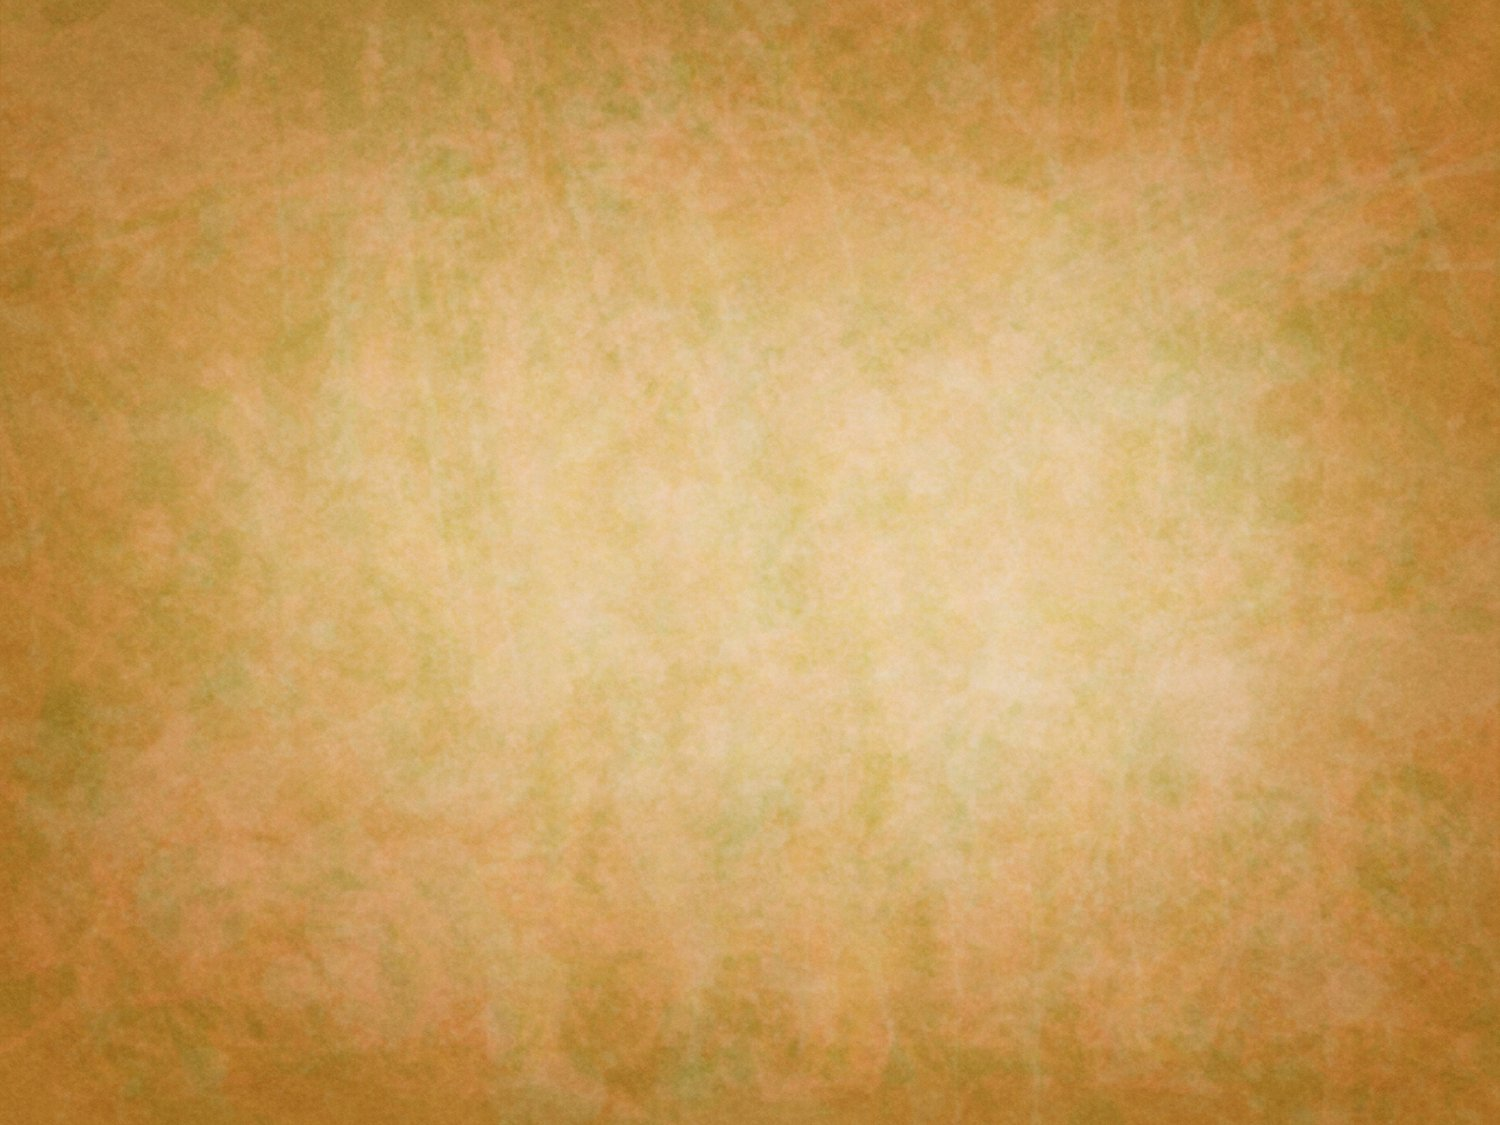 Free Brown Paper Texture 4 Stock Photo - FreeImages.com